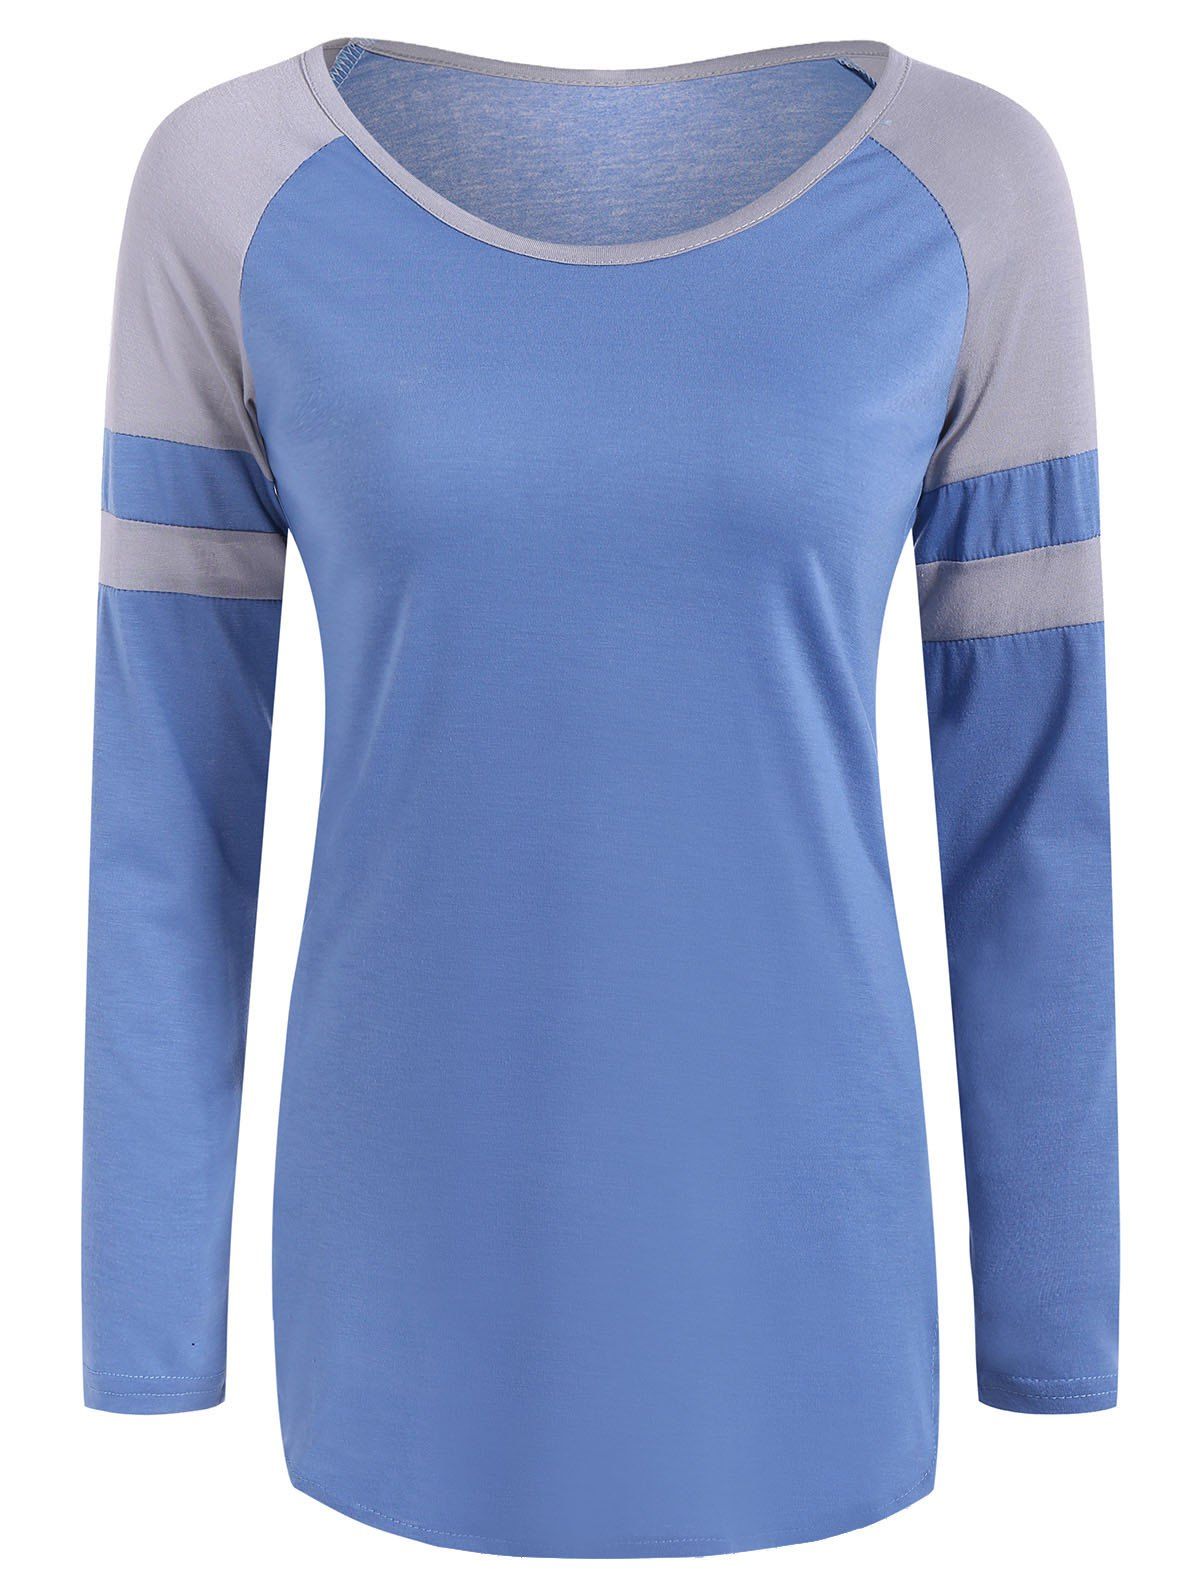 Raglan Sleeve Color Block Design T-Shirt - SKY BLUE S